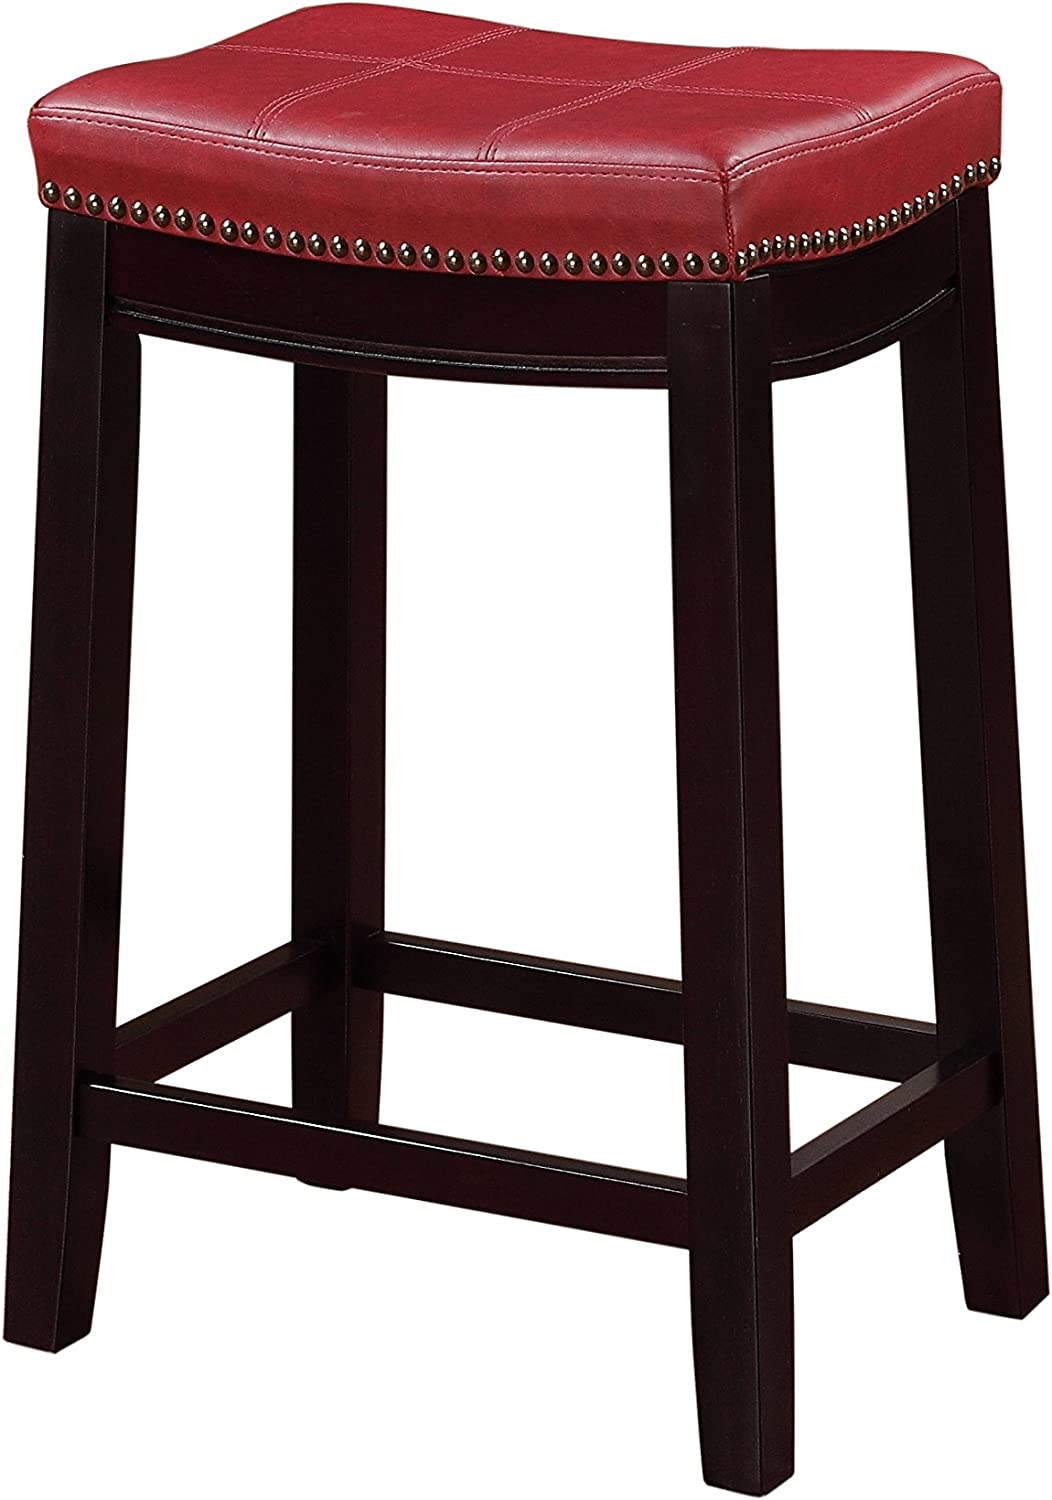 Kavara Medium Brown Color Barstool ,Set of 2